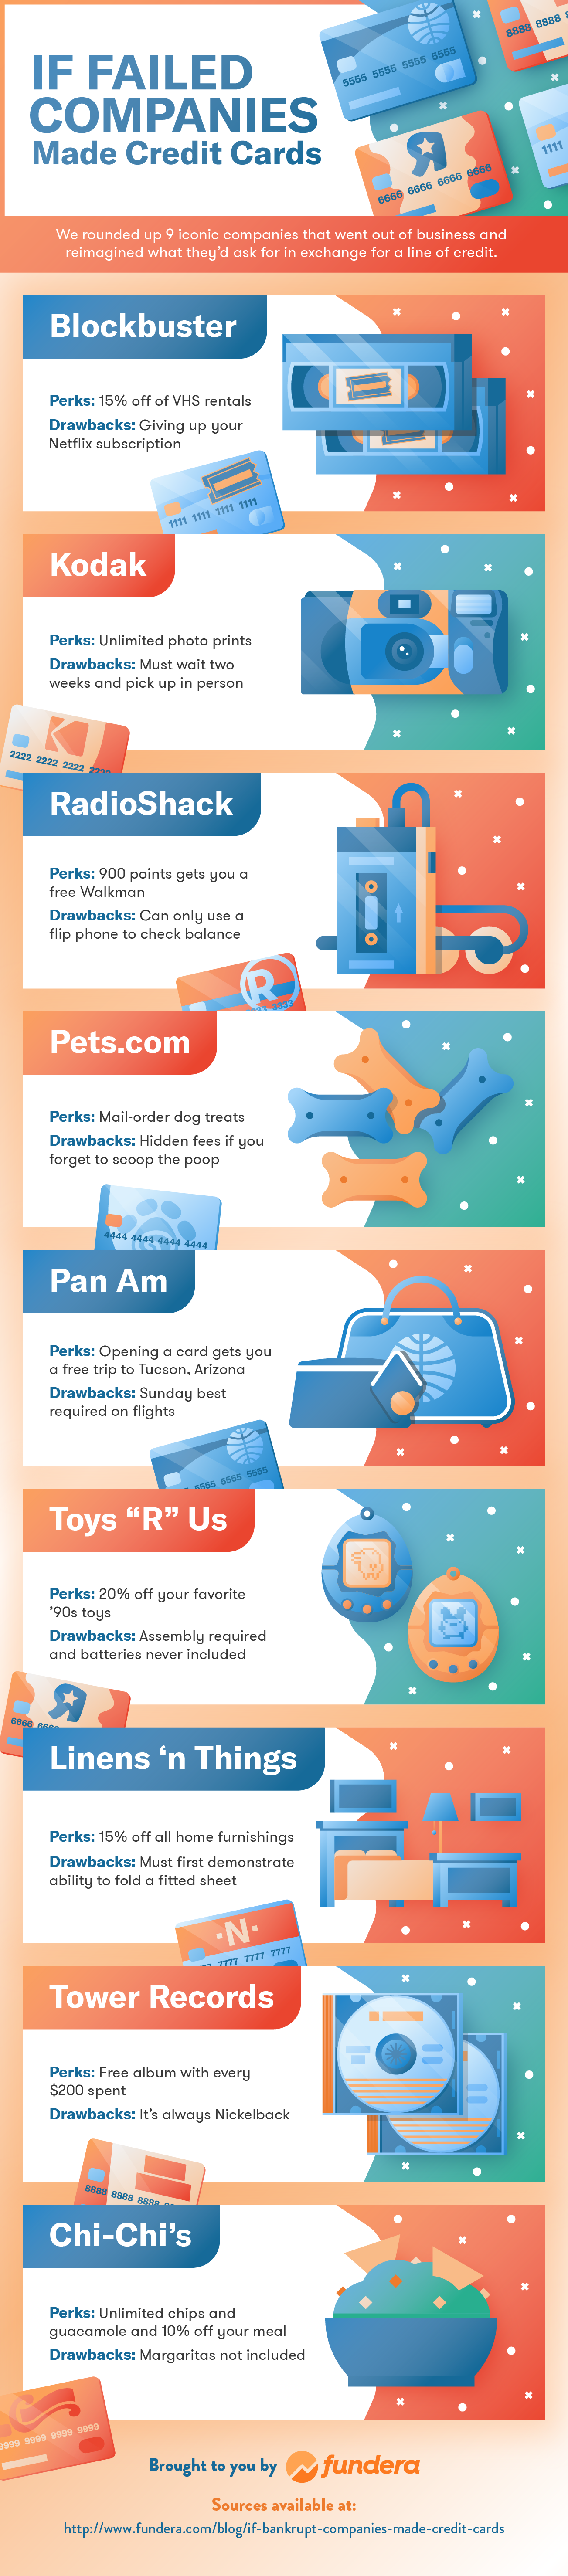 If Failed Companies Made Credit Cards (Infographic) - Fundera Ledger